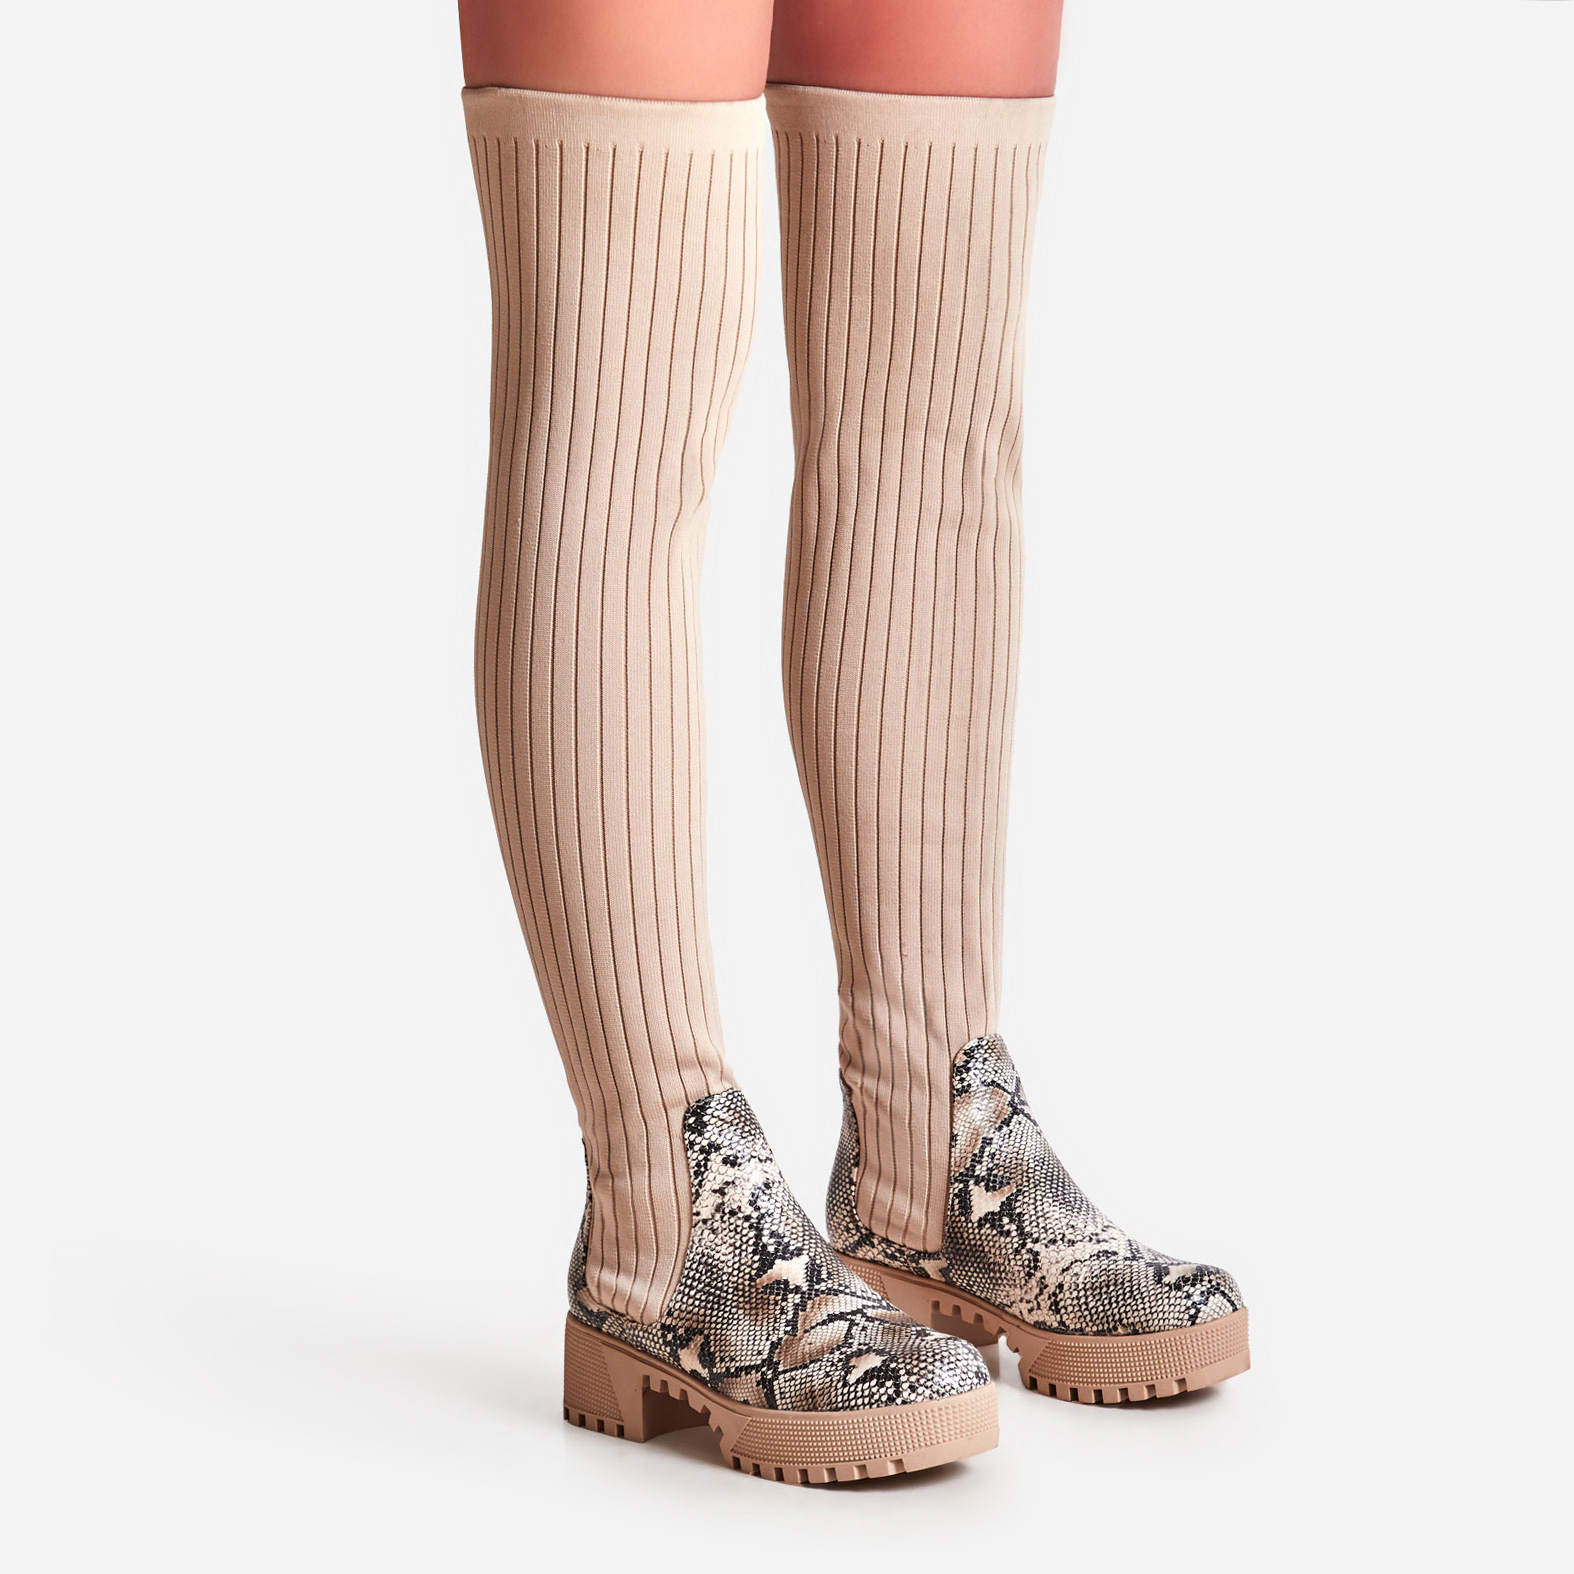 Colorado Knitted Thigh High Long Boot In Nude Snake Print Faux Leather